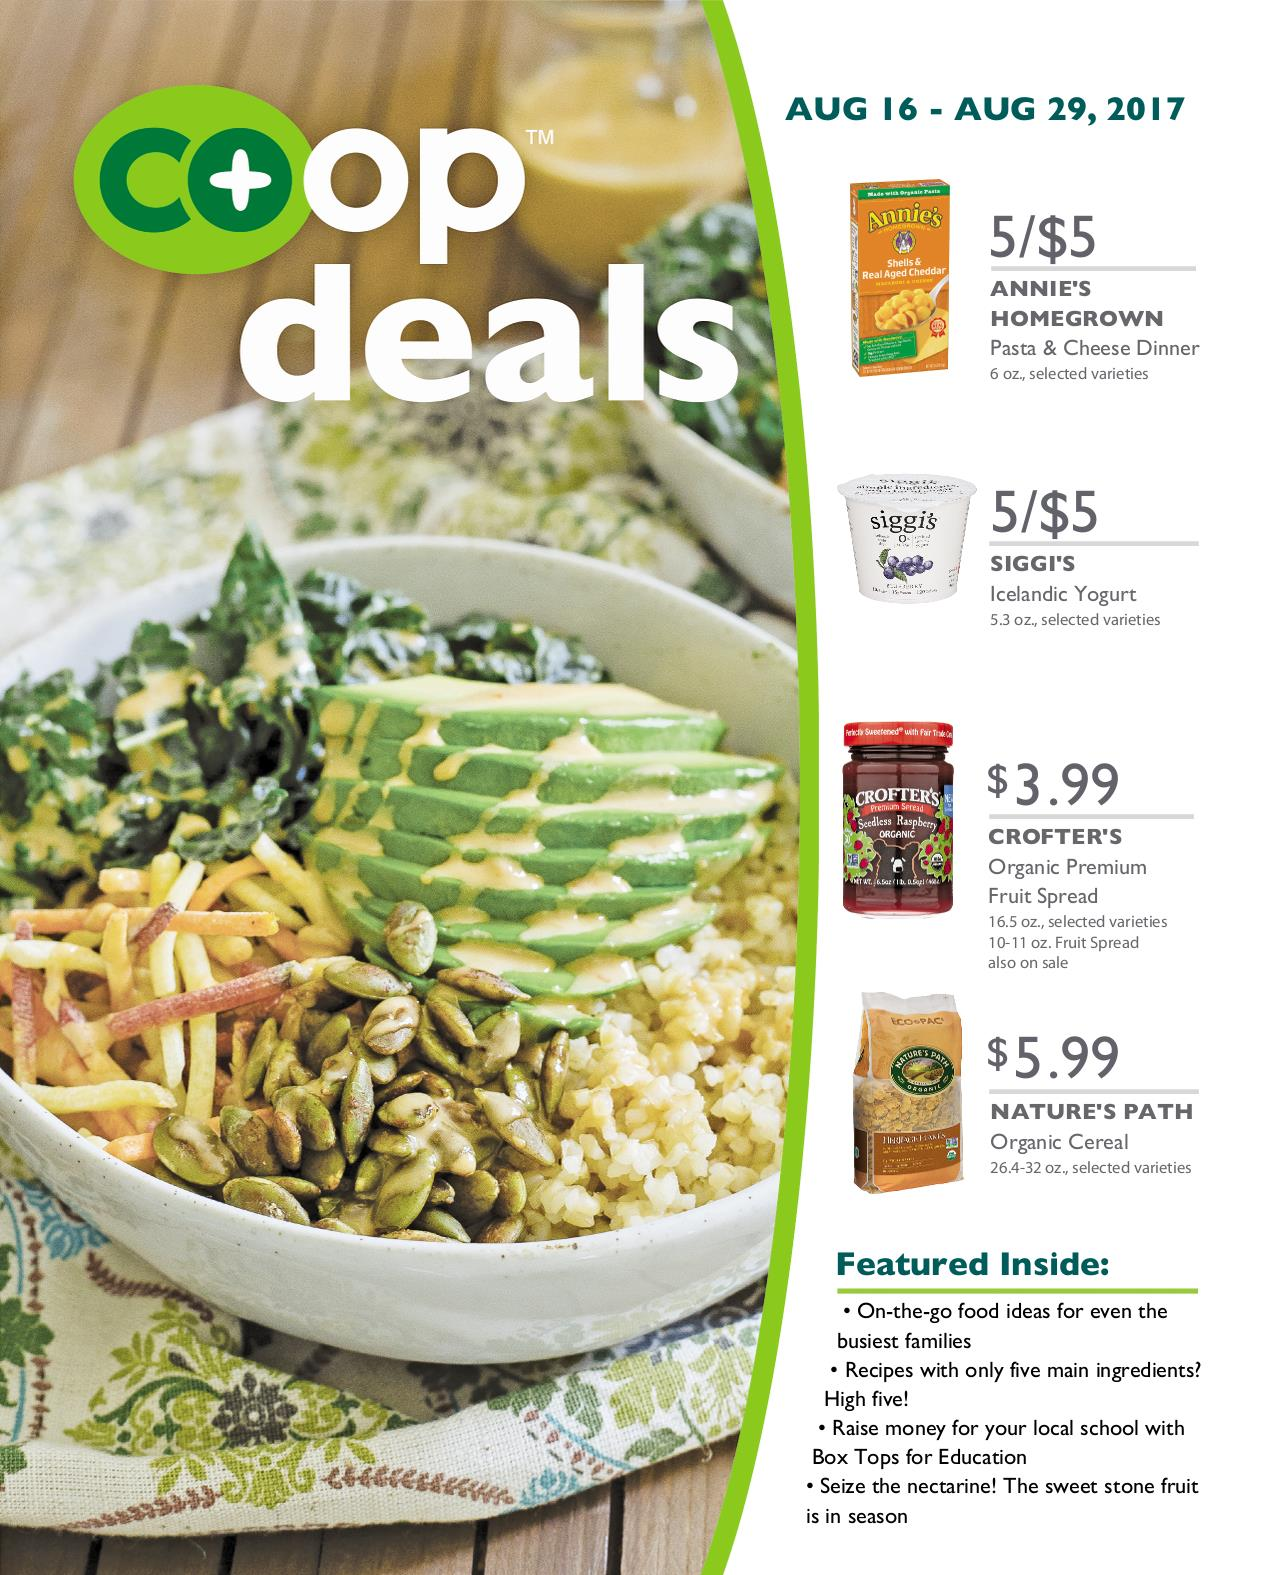 Co+op Deals Aug 2017 Flyer B